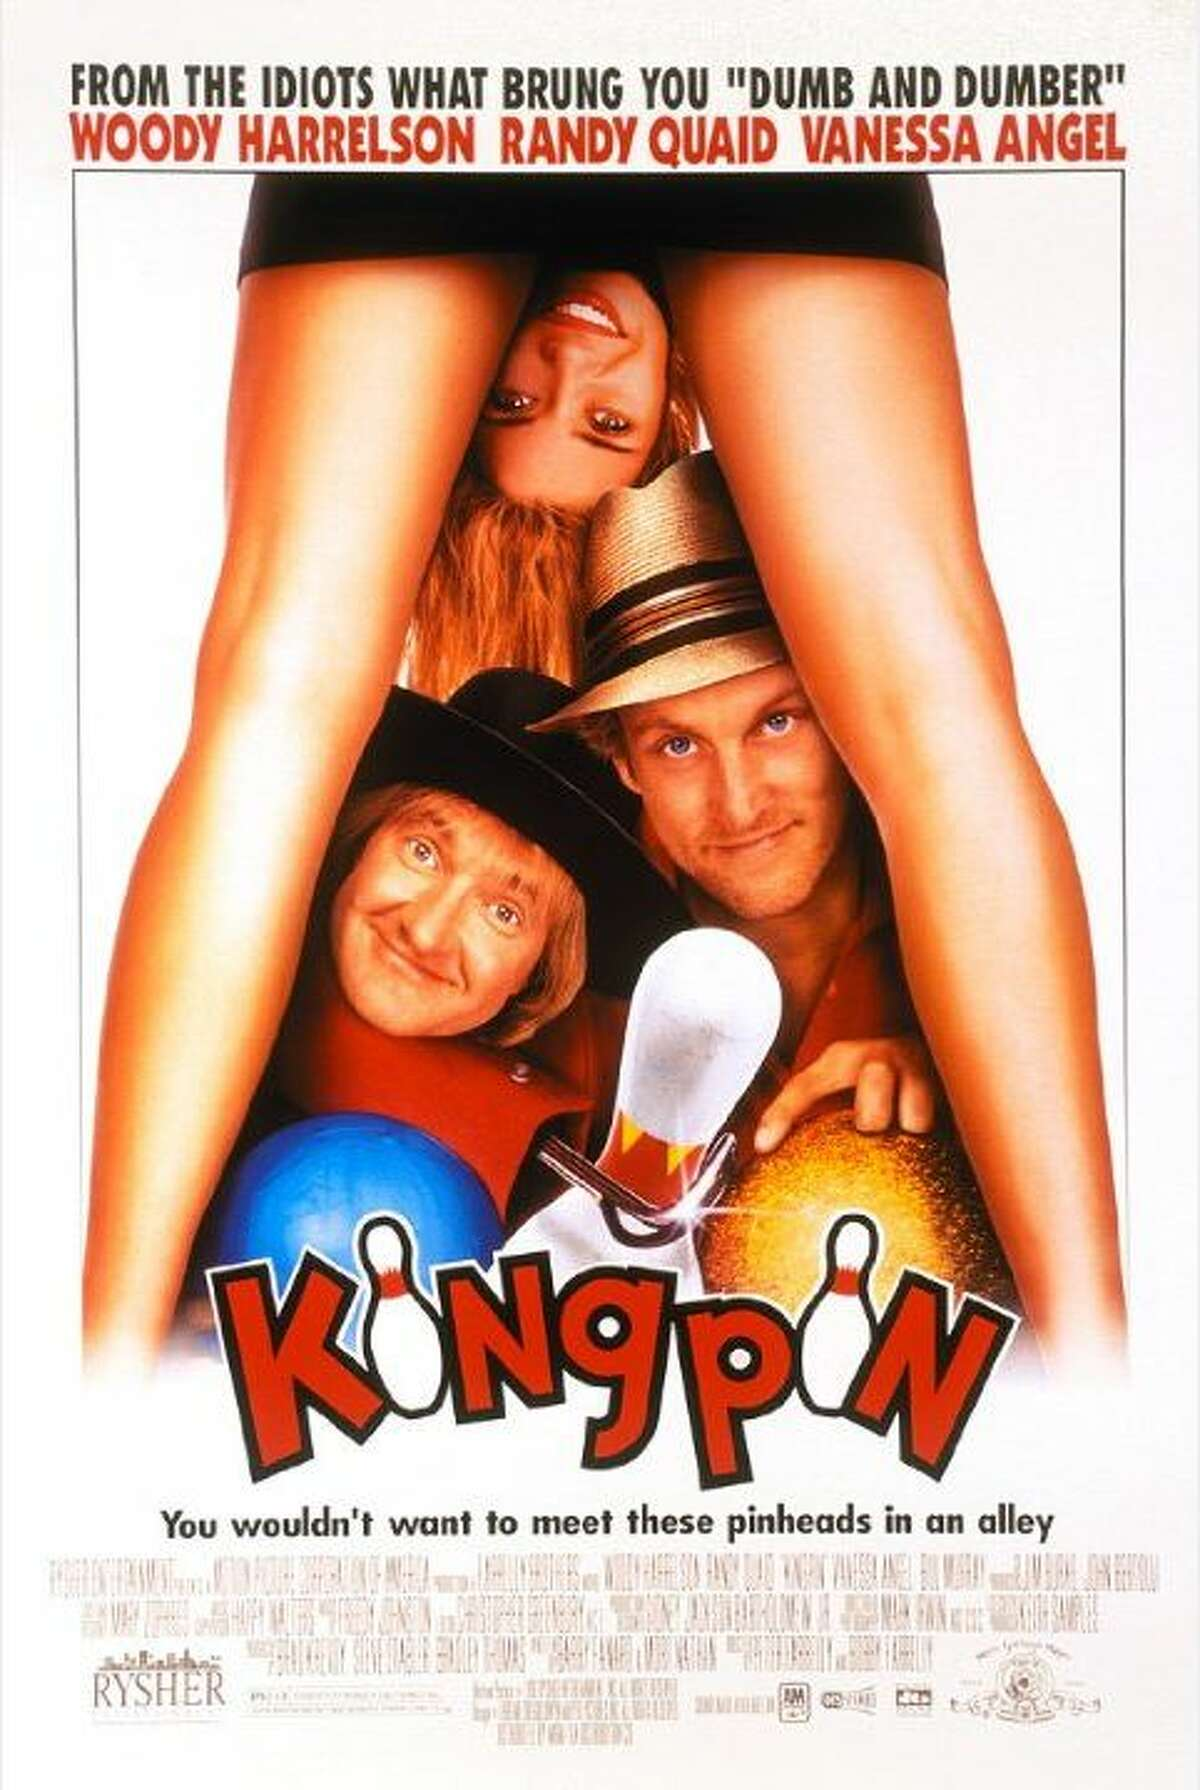 'Kingpin' - The Farrelly brothers dumb down and goof up pro bowling -- and gross us out in the process. After bowler Roy Munsen (Woody Harrelson) swindles the wrong crowd and is left with a hook for a hand, he settles into impoverished obscurity. That is, until he uncovers the next big thing: an Amish kid named Ishmael (Randy Quaid). So, the corrupt and the hopelessly naïve hit the circuit intent on settling an old score with Big Ern (Bill Murray). Available Nov. 1